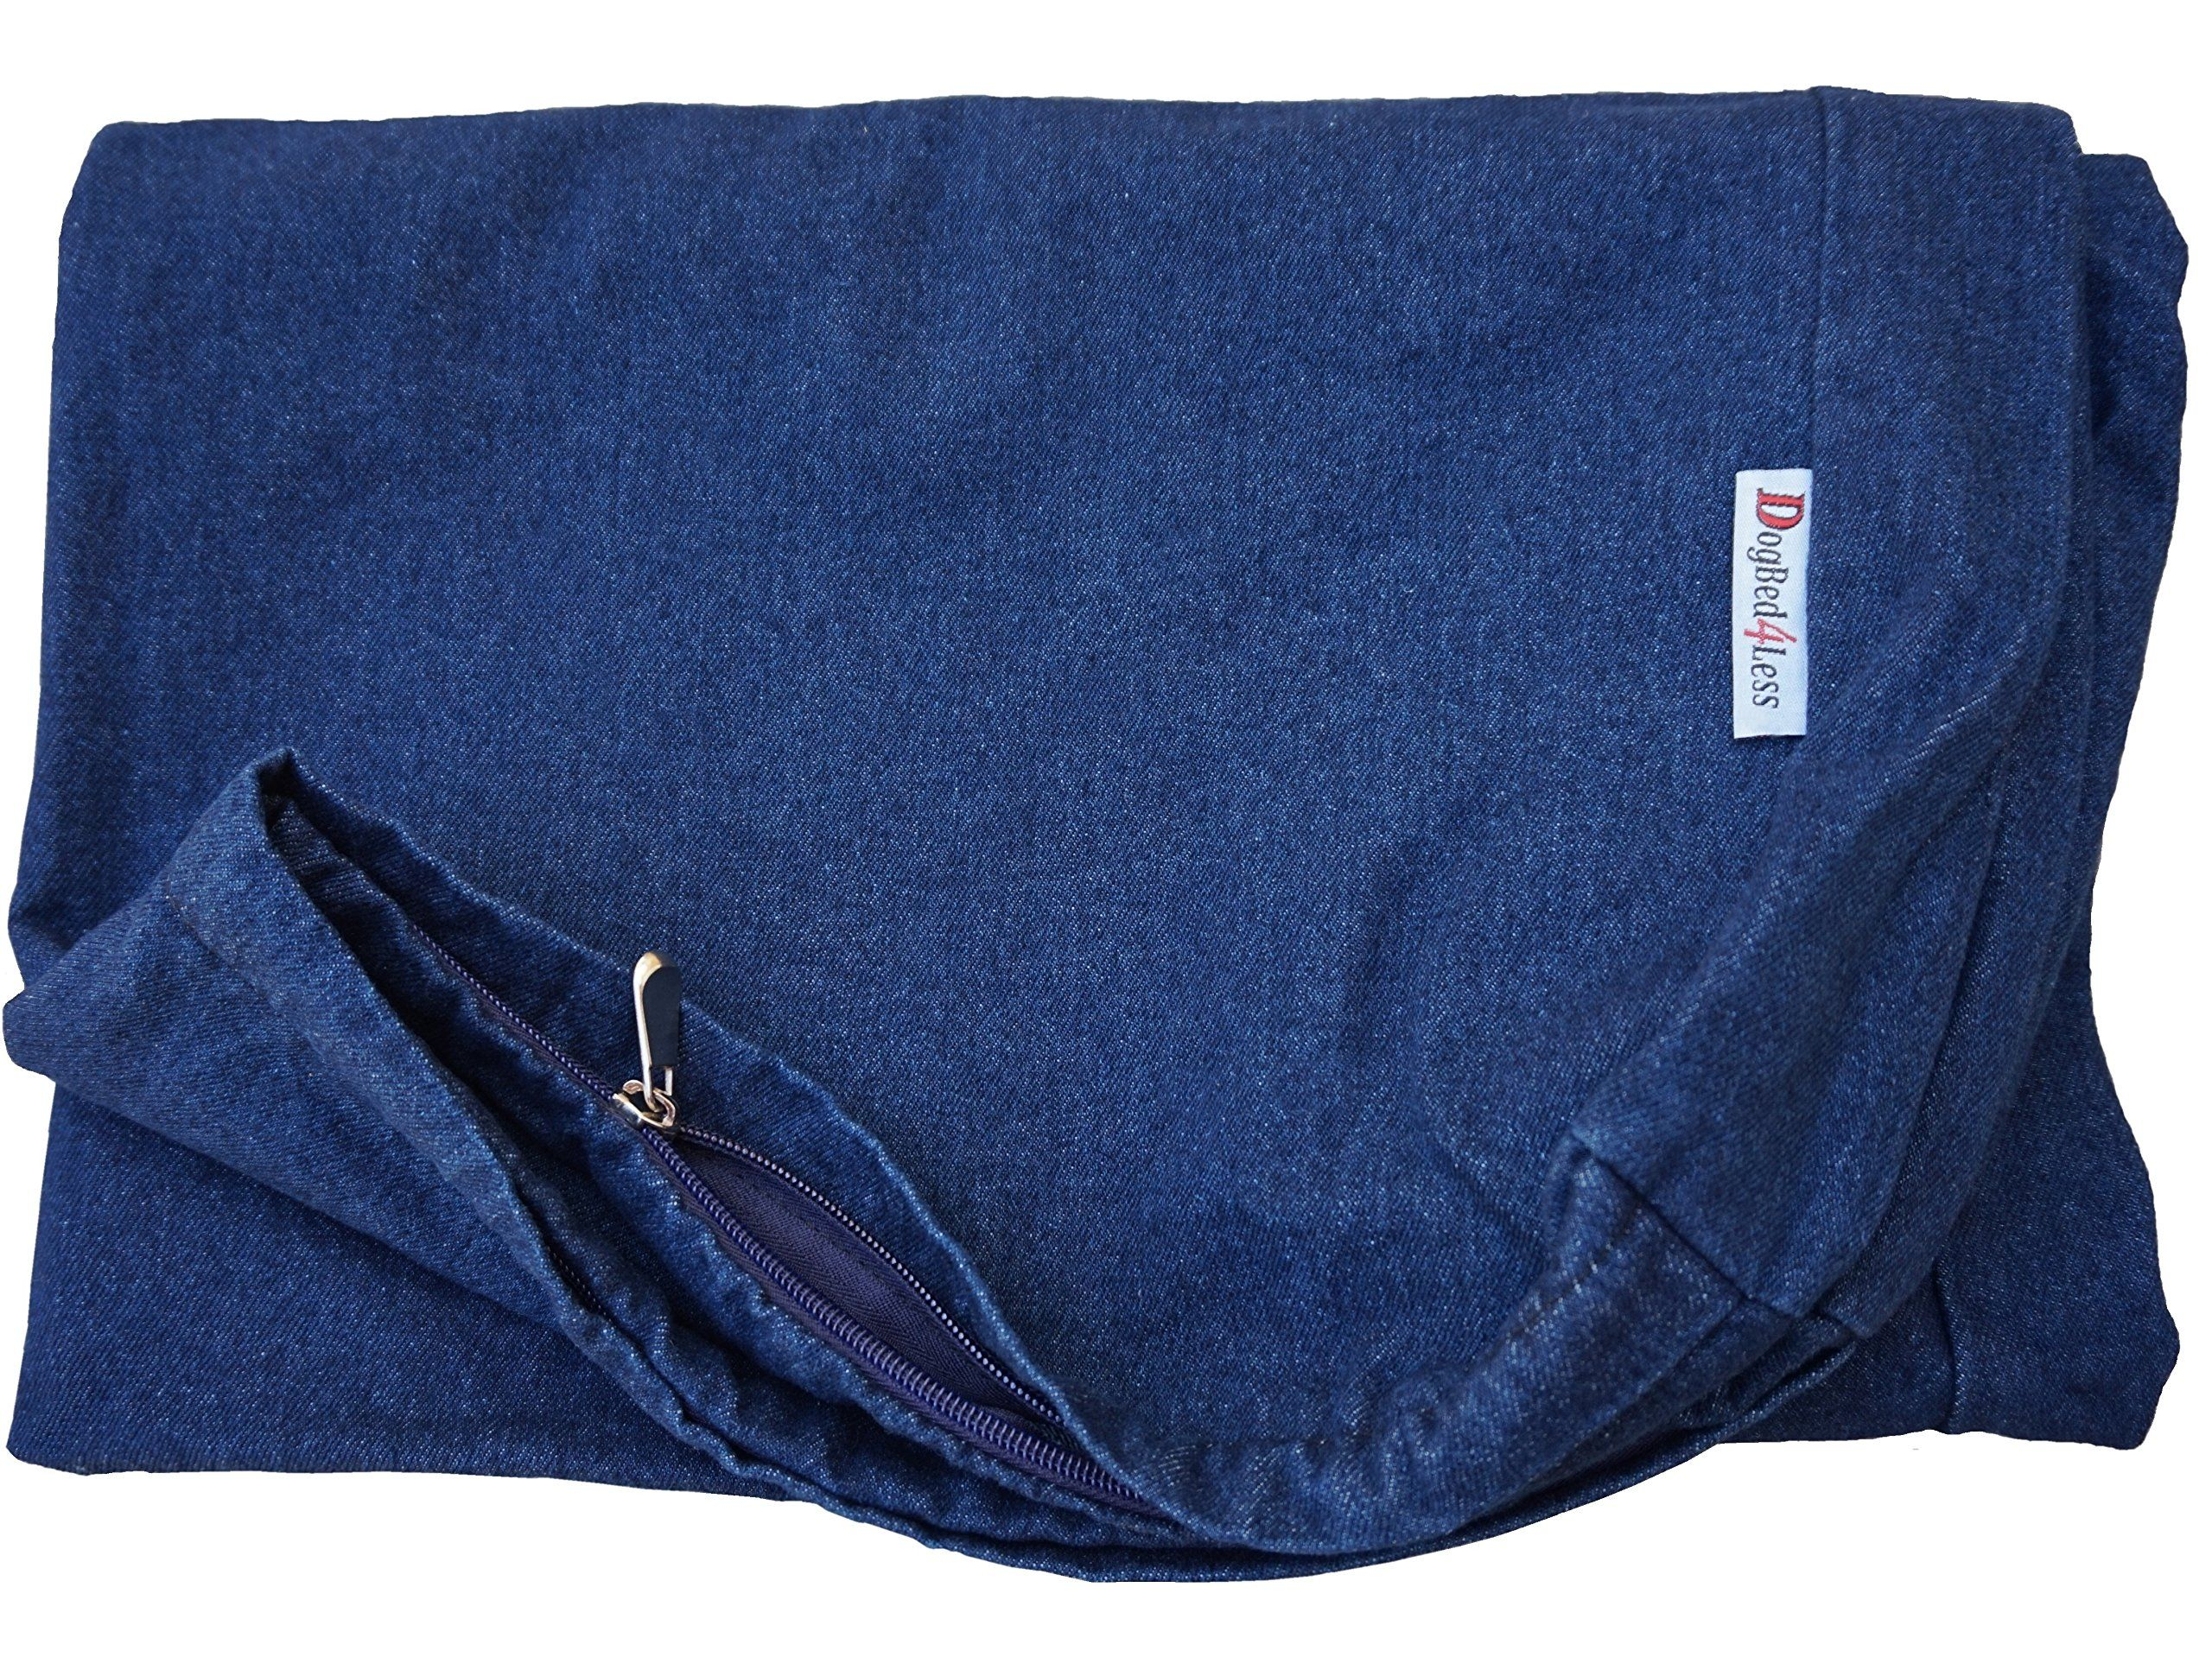 Dogbed4less 40X35X4 Inches Blue Color Durable Denim Jean